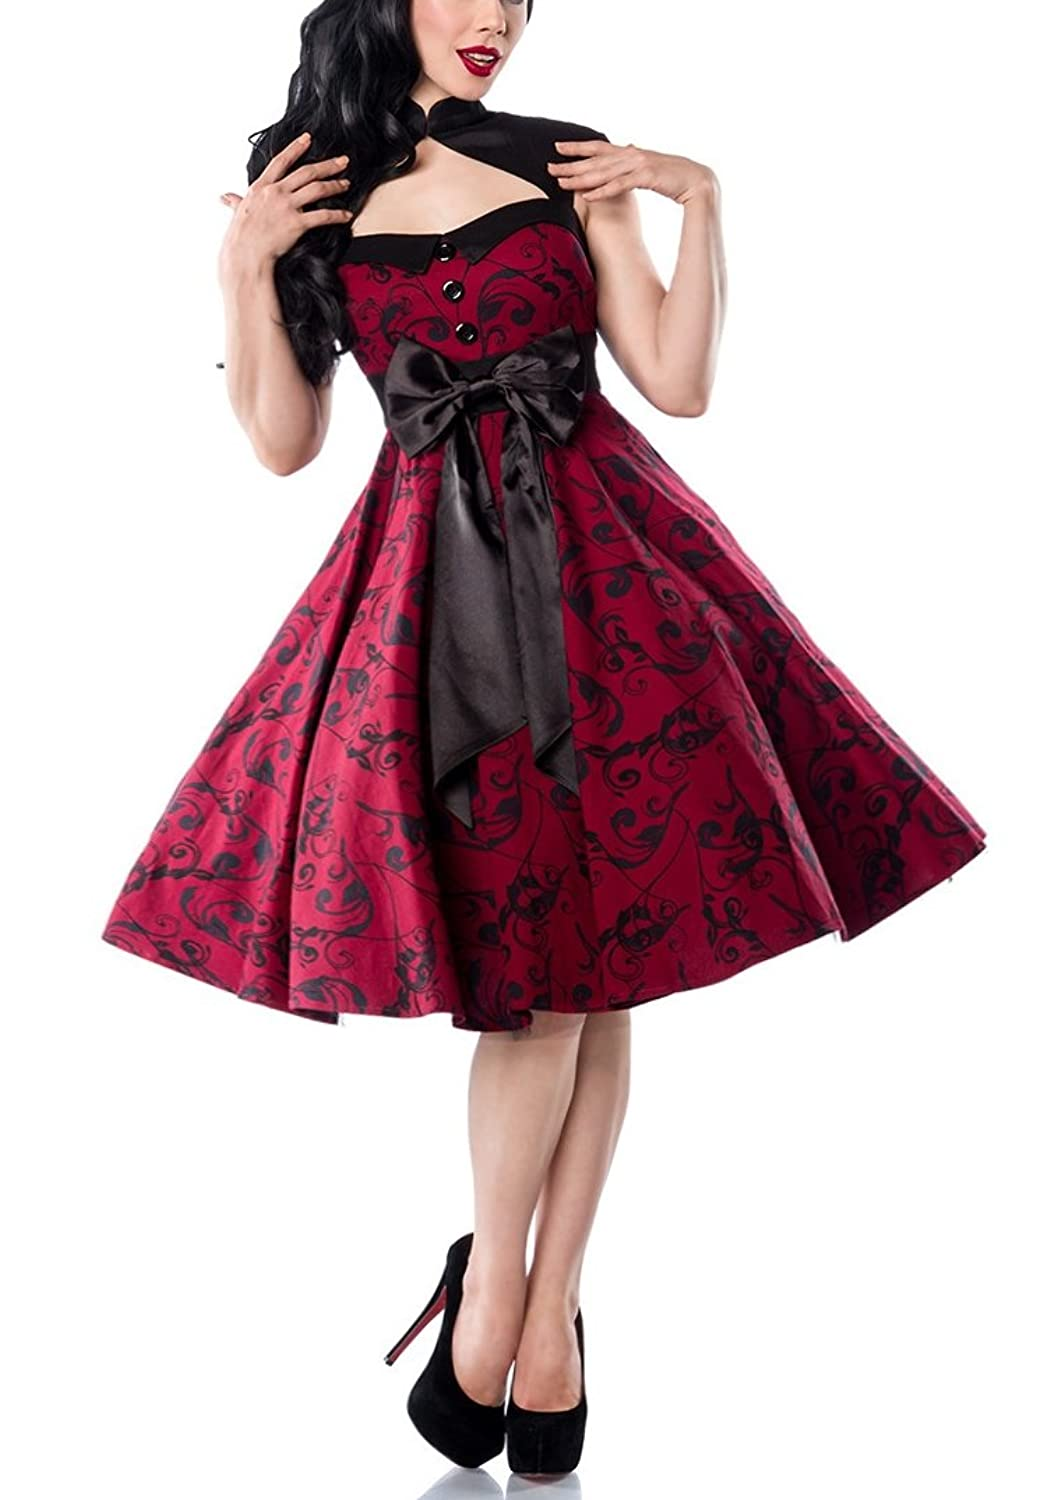 Red with Large Tapered Rockabilly Dress satin bow on front and back